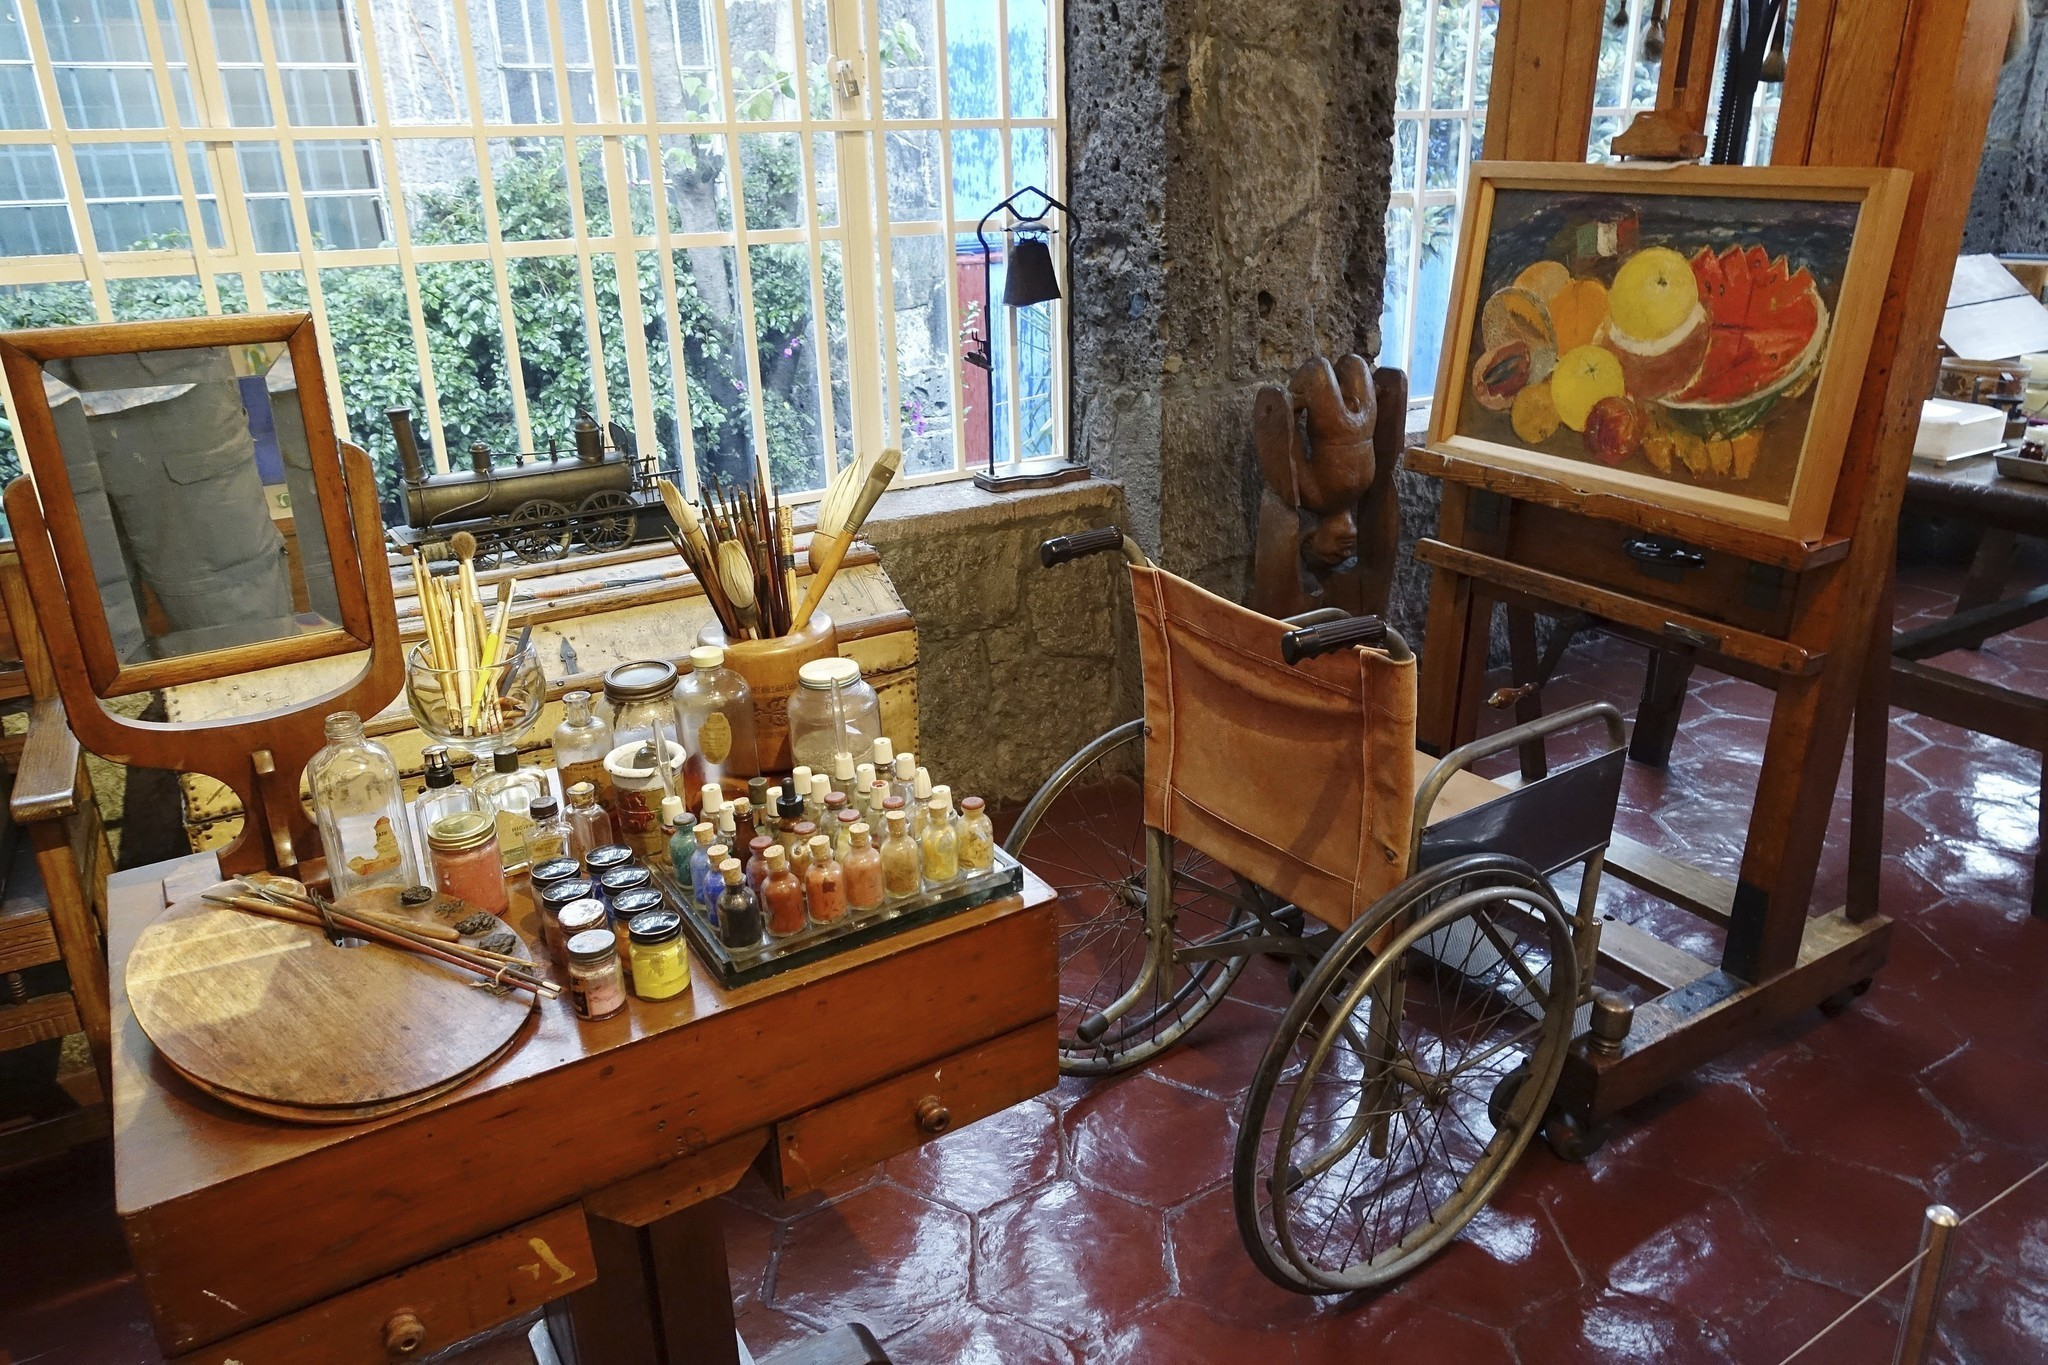 On The Frida Kahlo And Diego Rivera Art Trail In Mexico